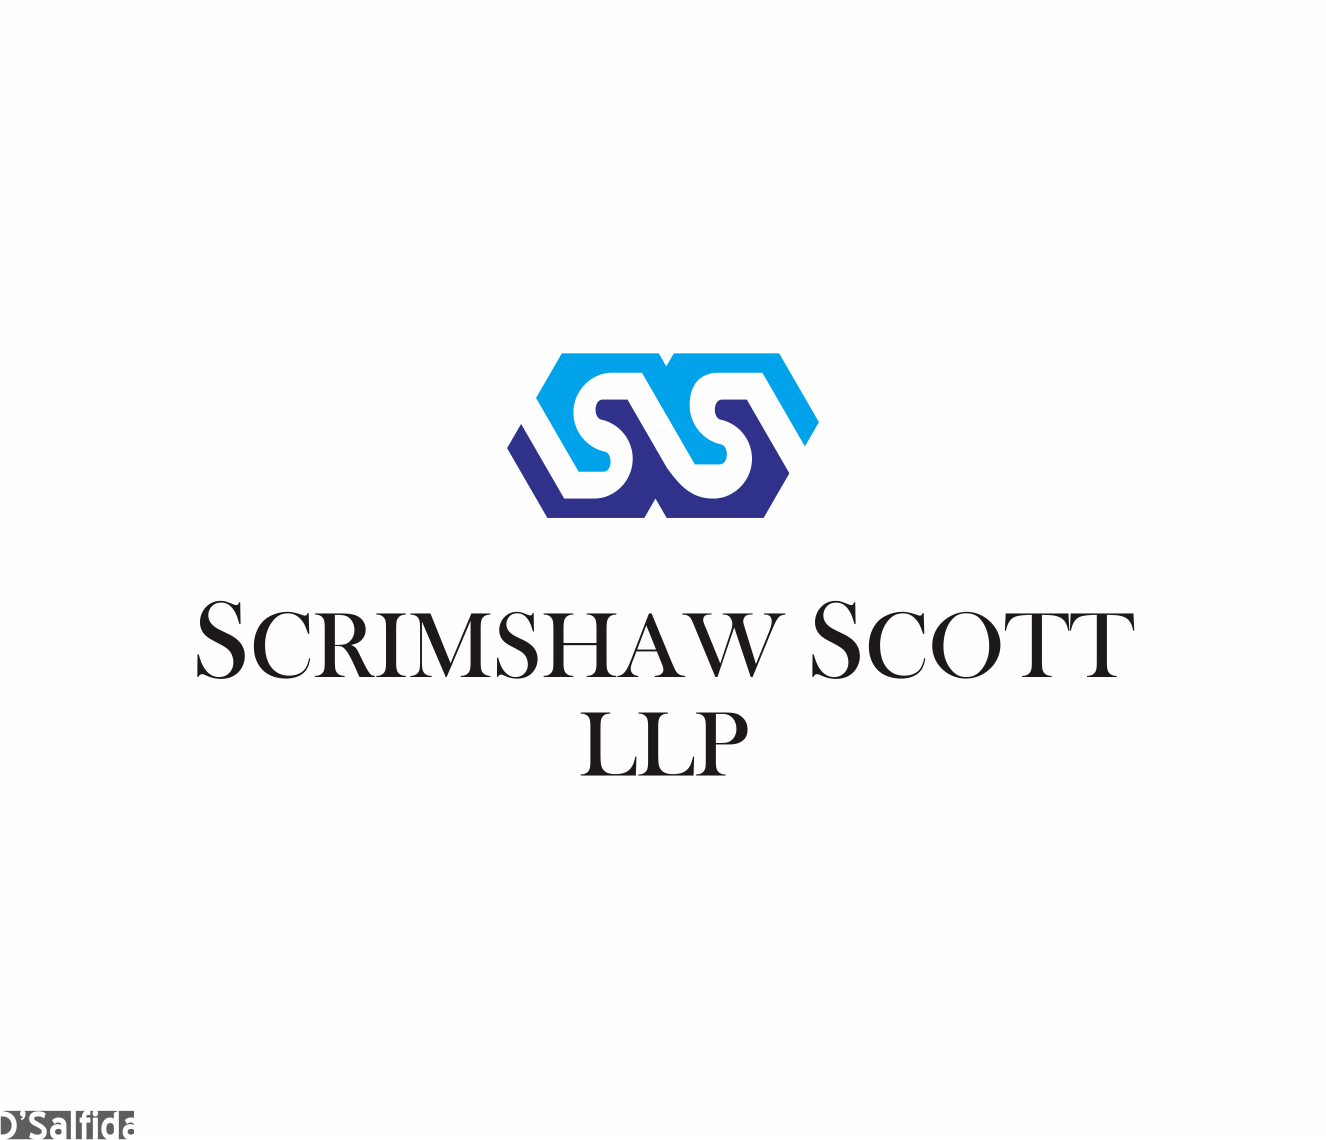 Logo Design by Armada Jamaluddin - Entry No. 116 in the Logo Design Contest Creative Logo Design for Scrimshaw Scott LLP.